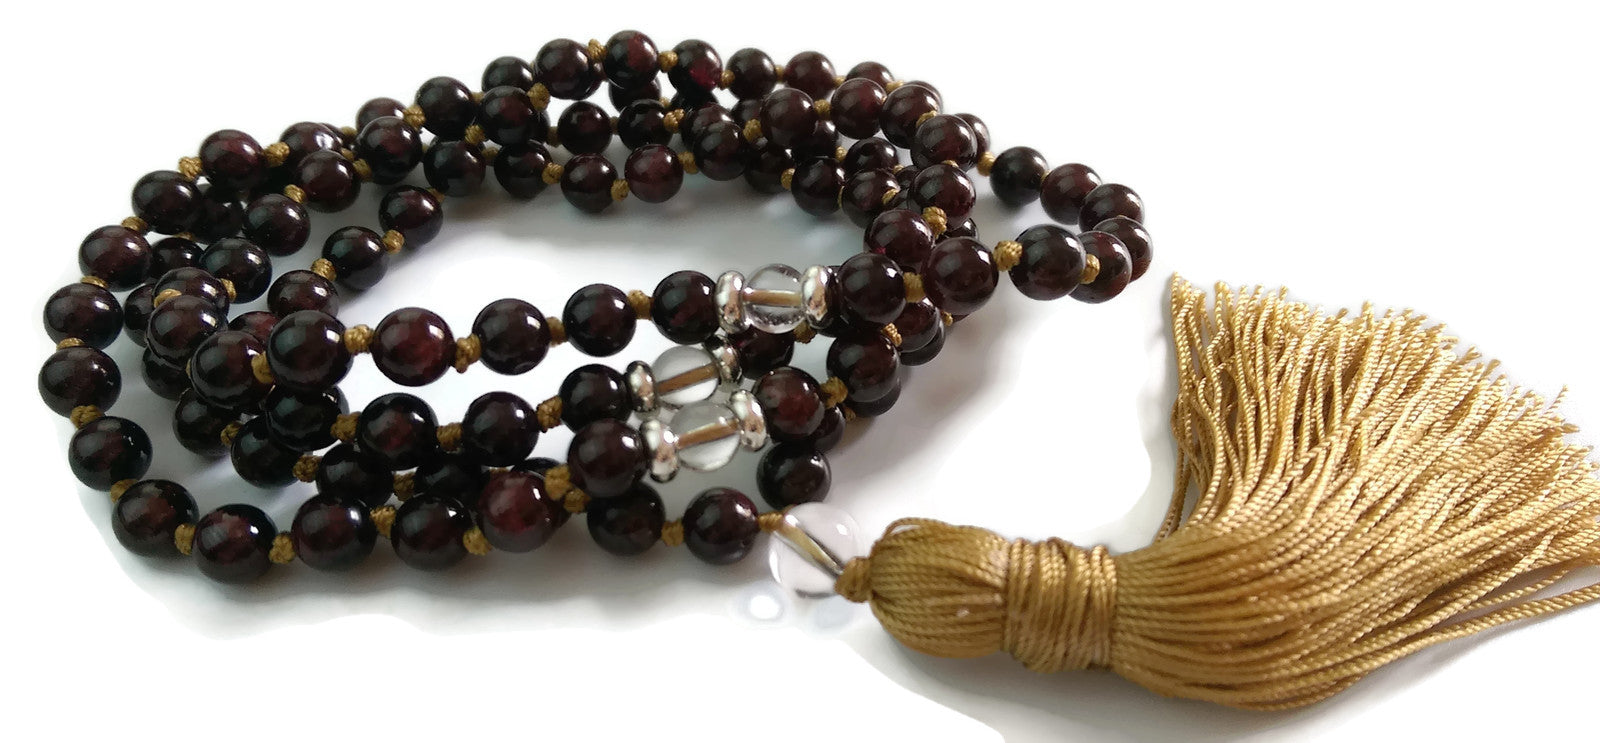 8mm Garnet Stone & Crystal Knotted 108 Meditation Mala Necklace and Copper Tassel | Grounding | Root Base Chakra